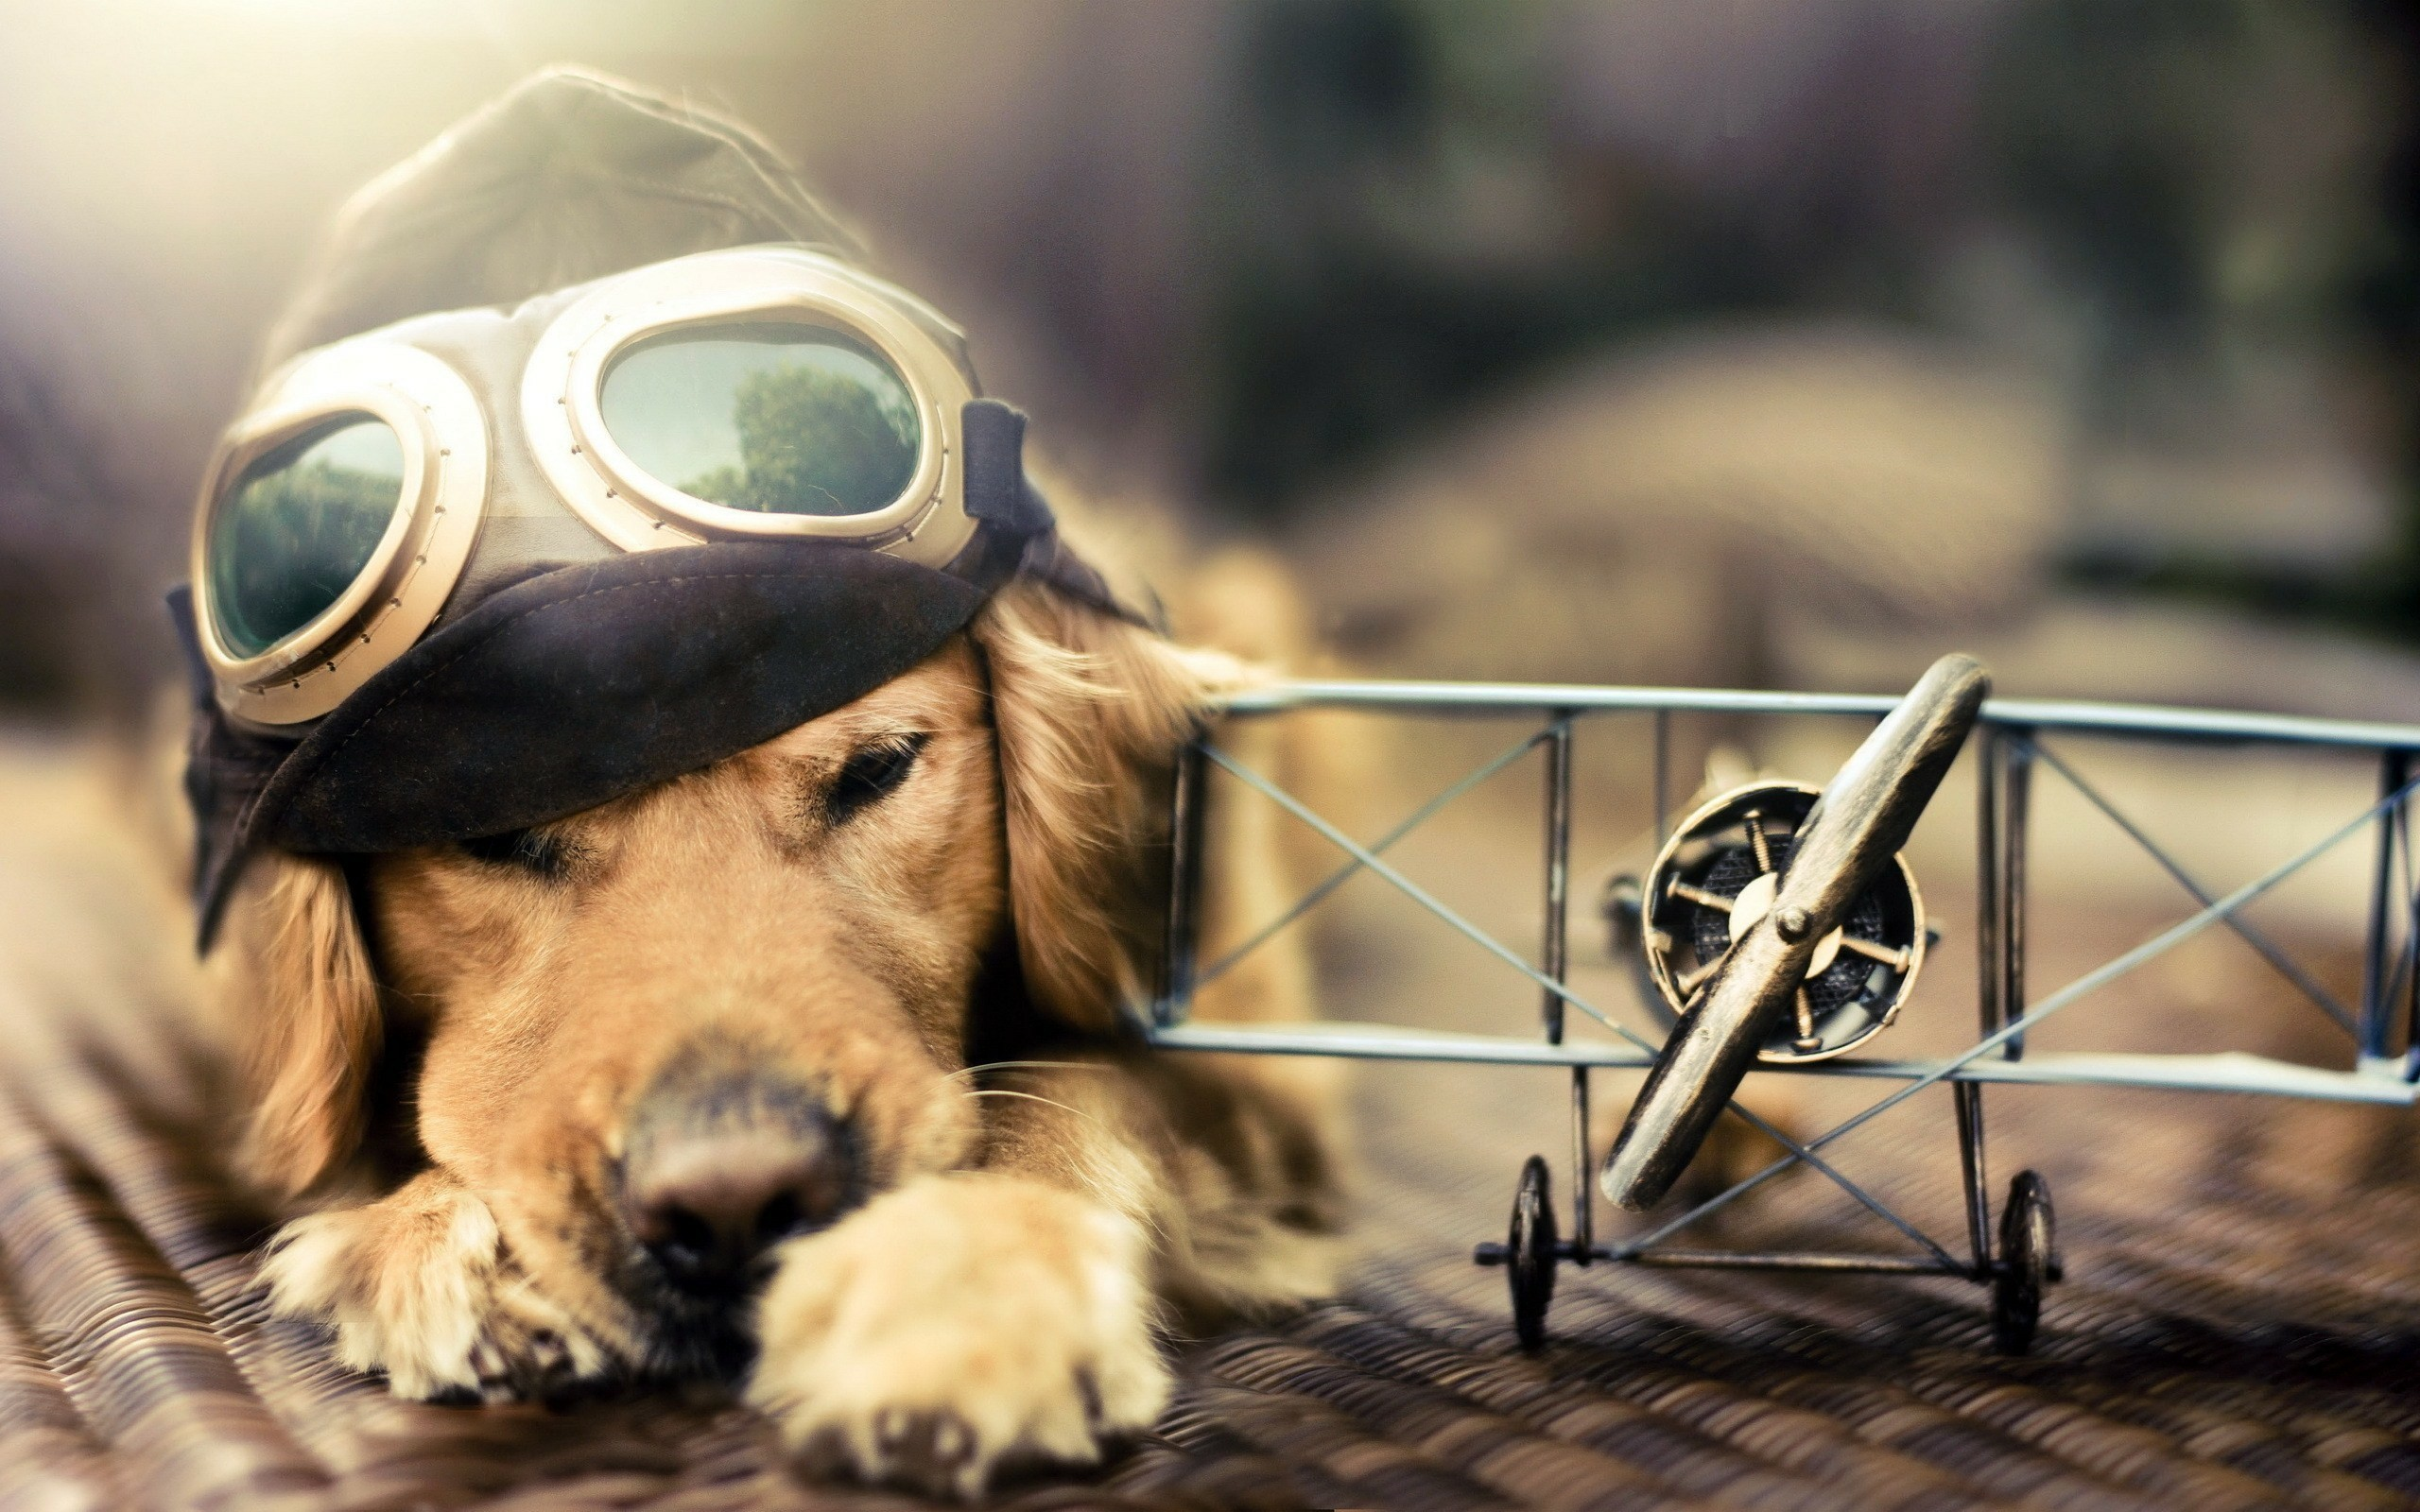 2560x1600 Free 3d mood old plane dog hd wallpapers download